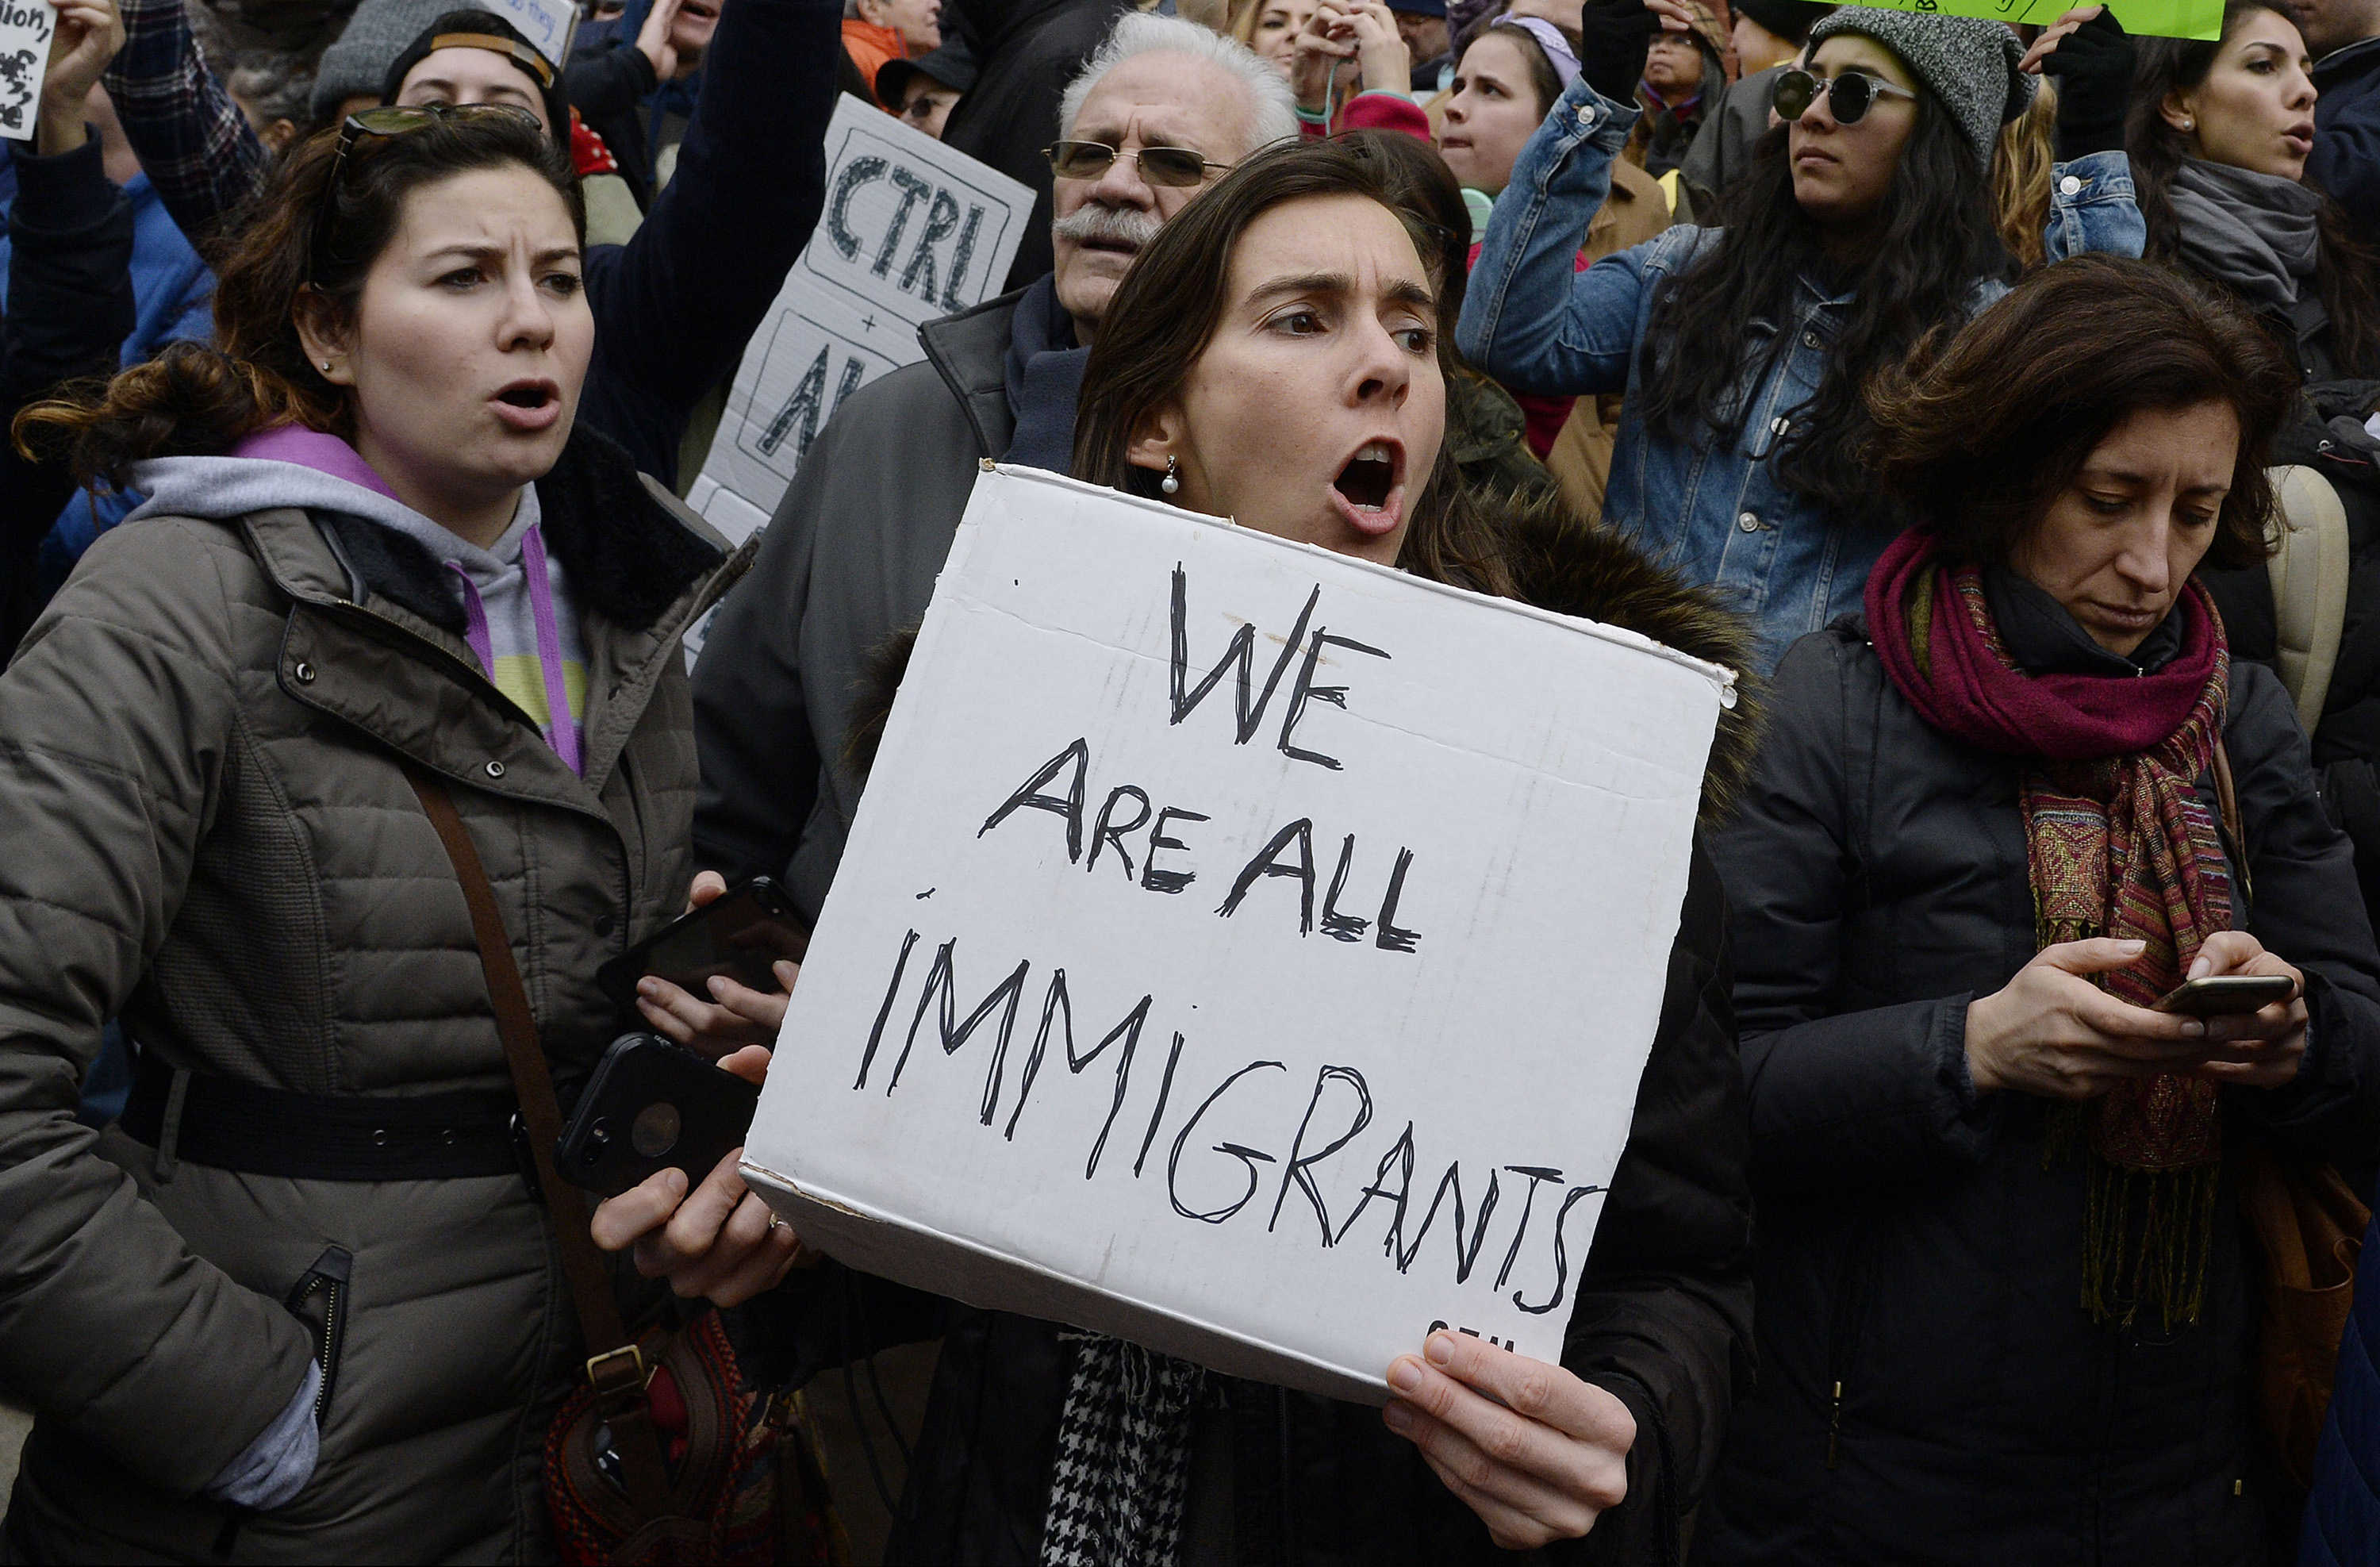 People gather at the White House to protest President Donald Trump's immigration plan on Sunday, Jan. 29, 2017 in Washington, D.C. (Olivier Douliery/Abaca Press/TNS)